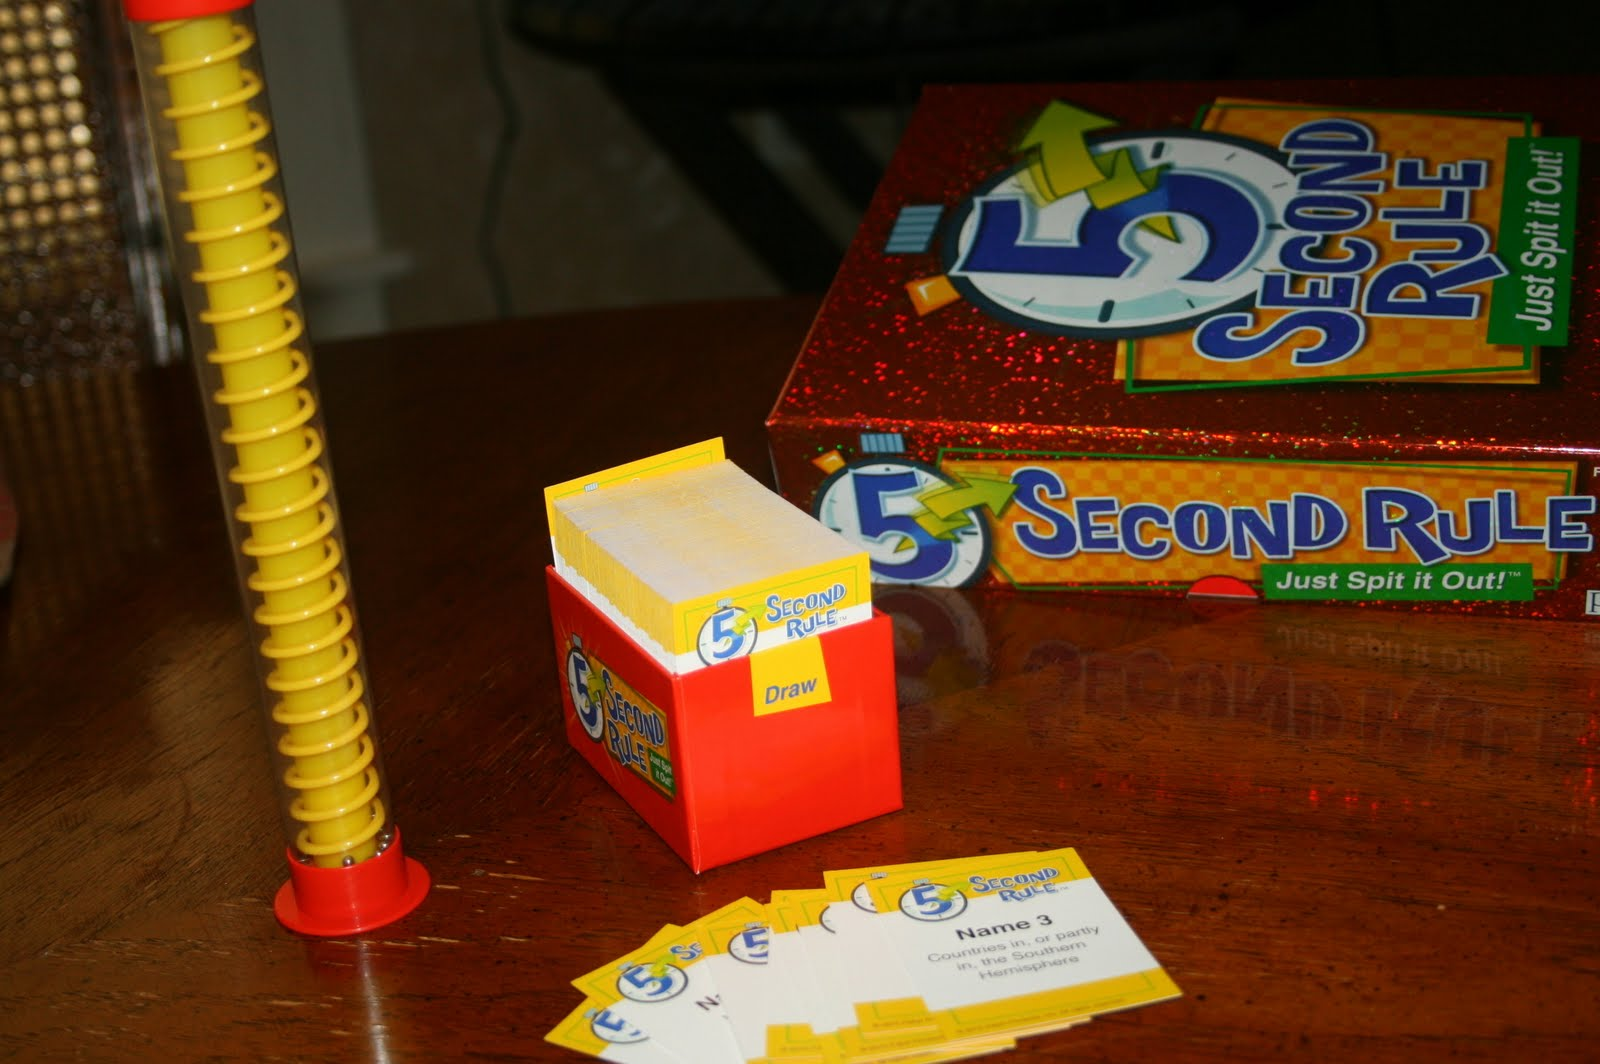 5 Second Rule - Just Spit it Out!